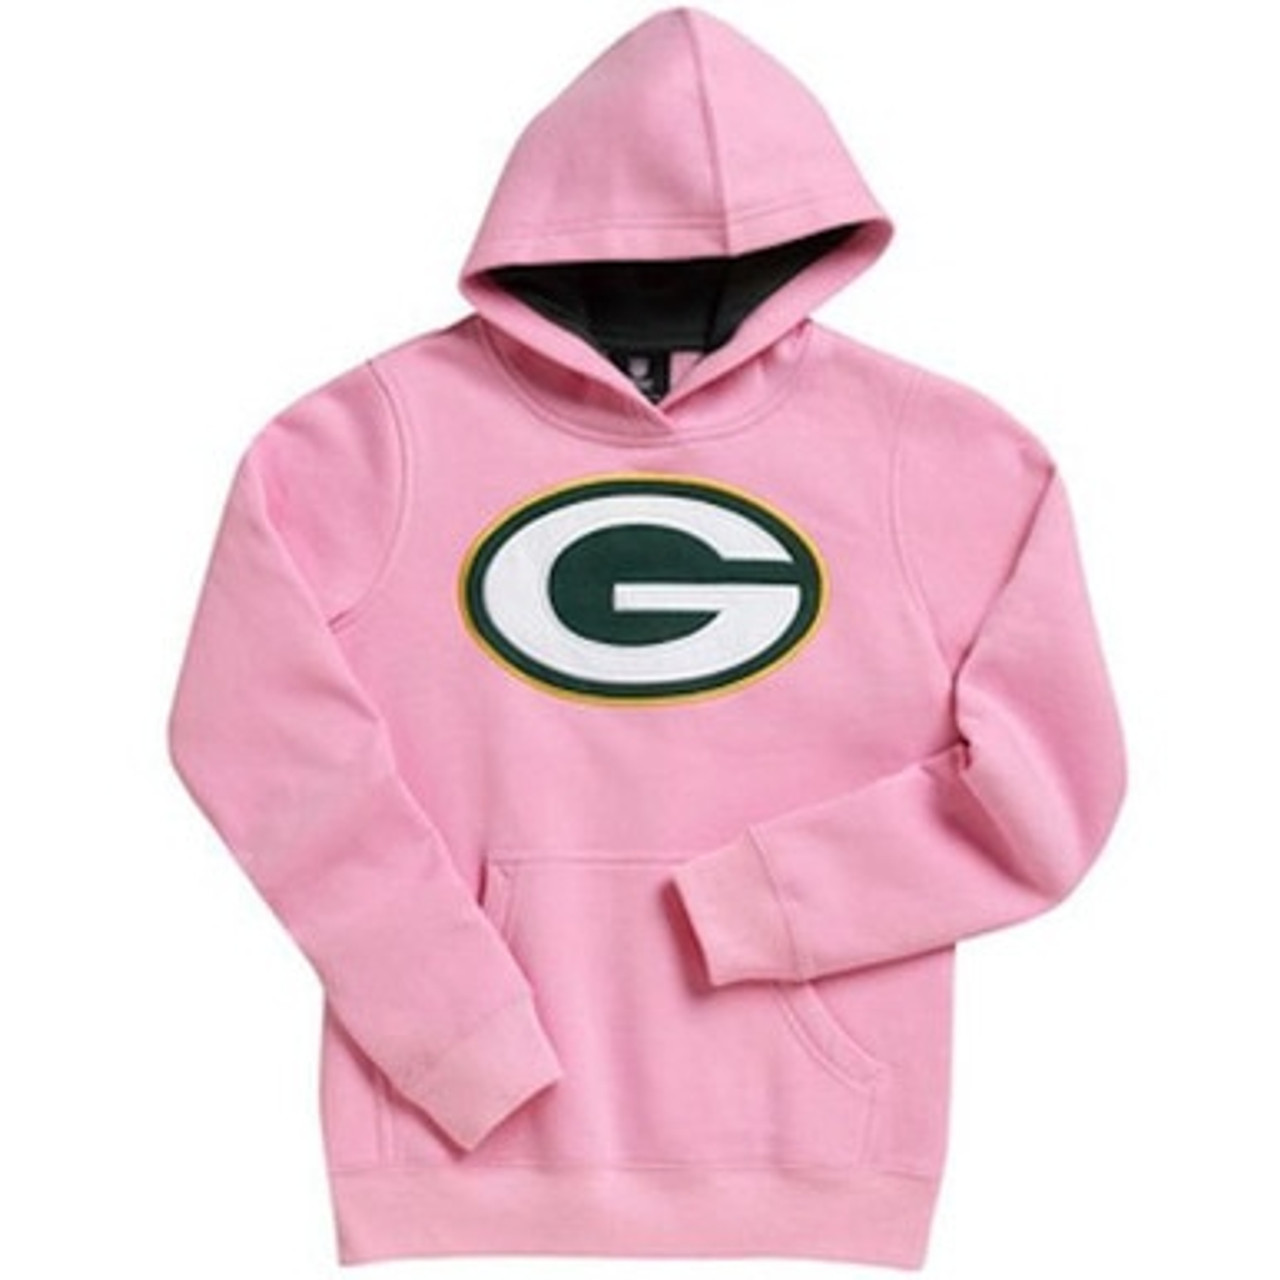 huge selection of 69b9a 741c2 Packers Pink Pullover Hoodie - Toddler